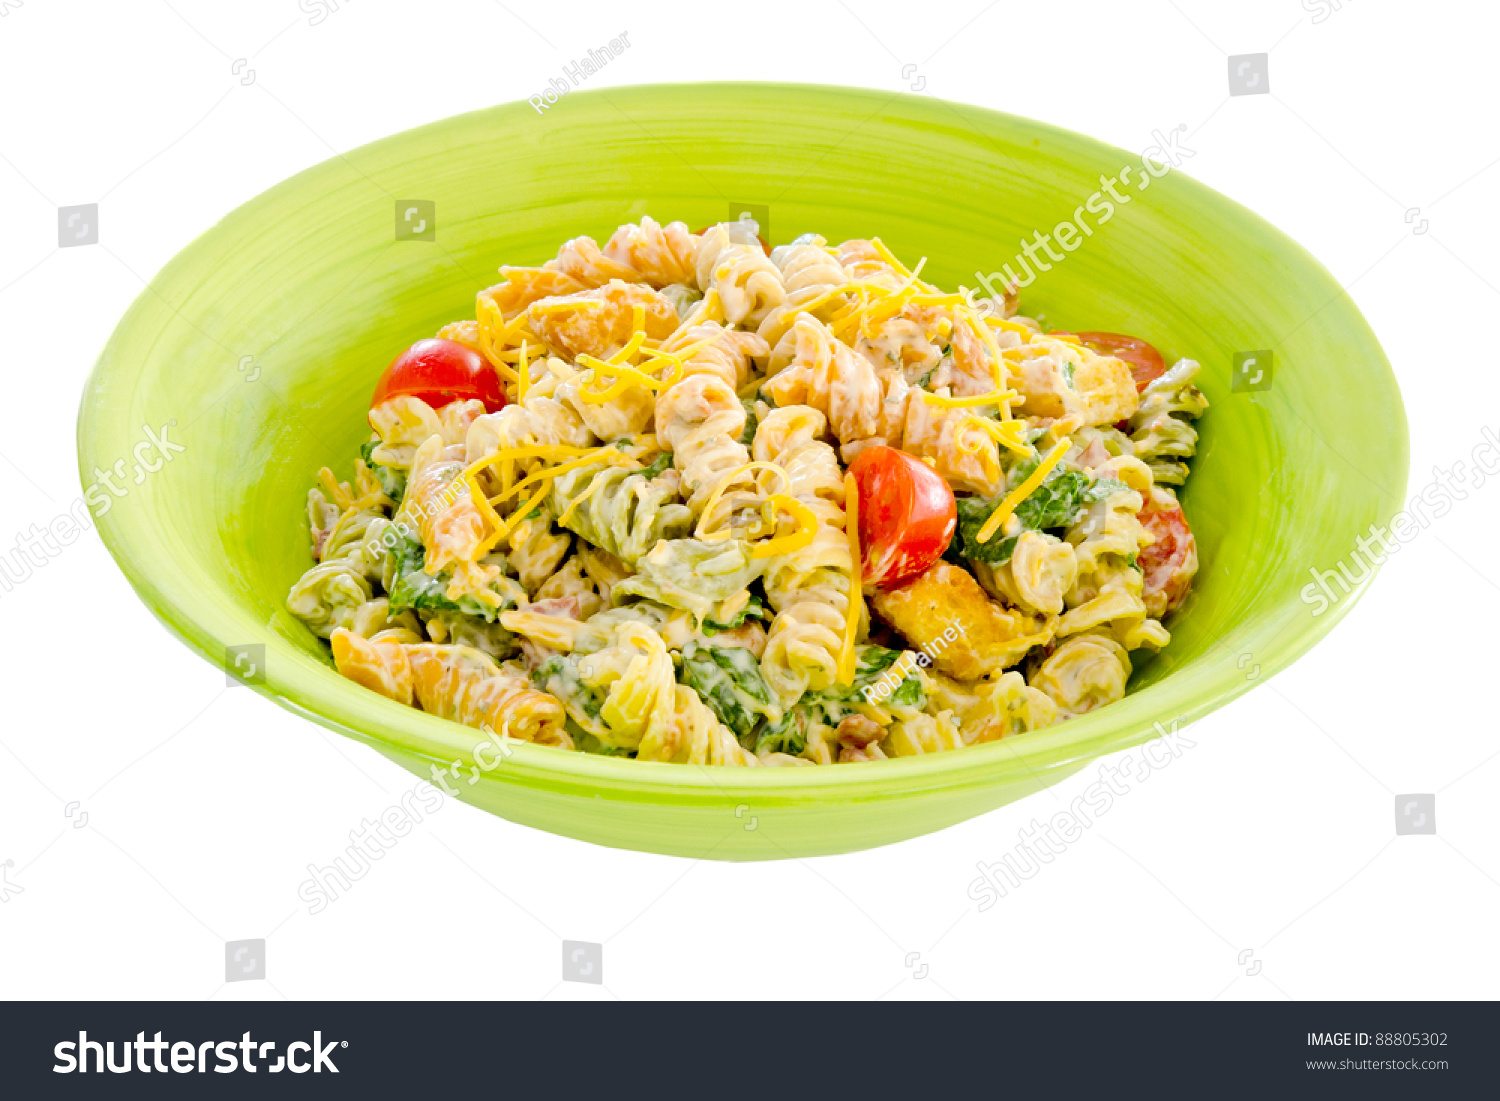 Cheesy bacon, lettuce and tomato pasta salad in green bowl isolated on ...